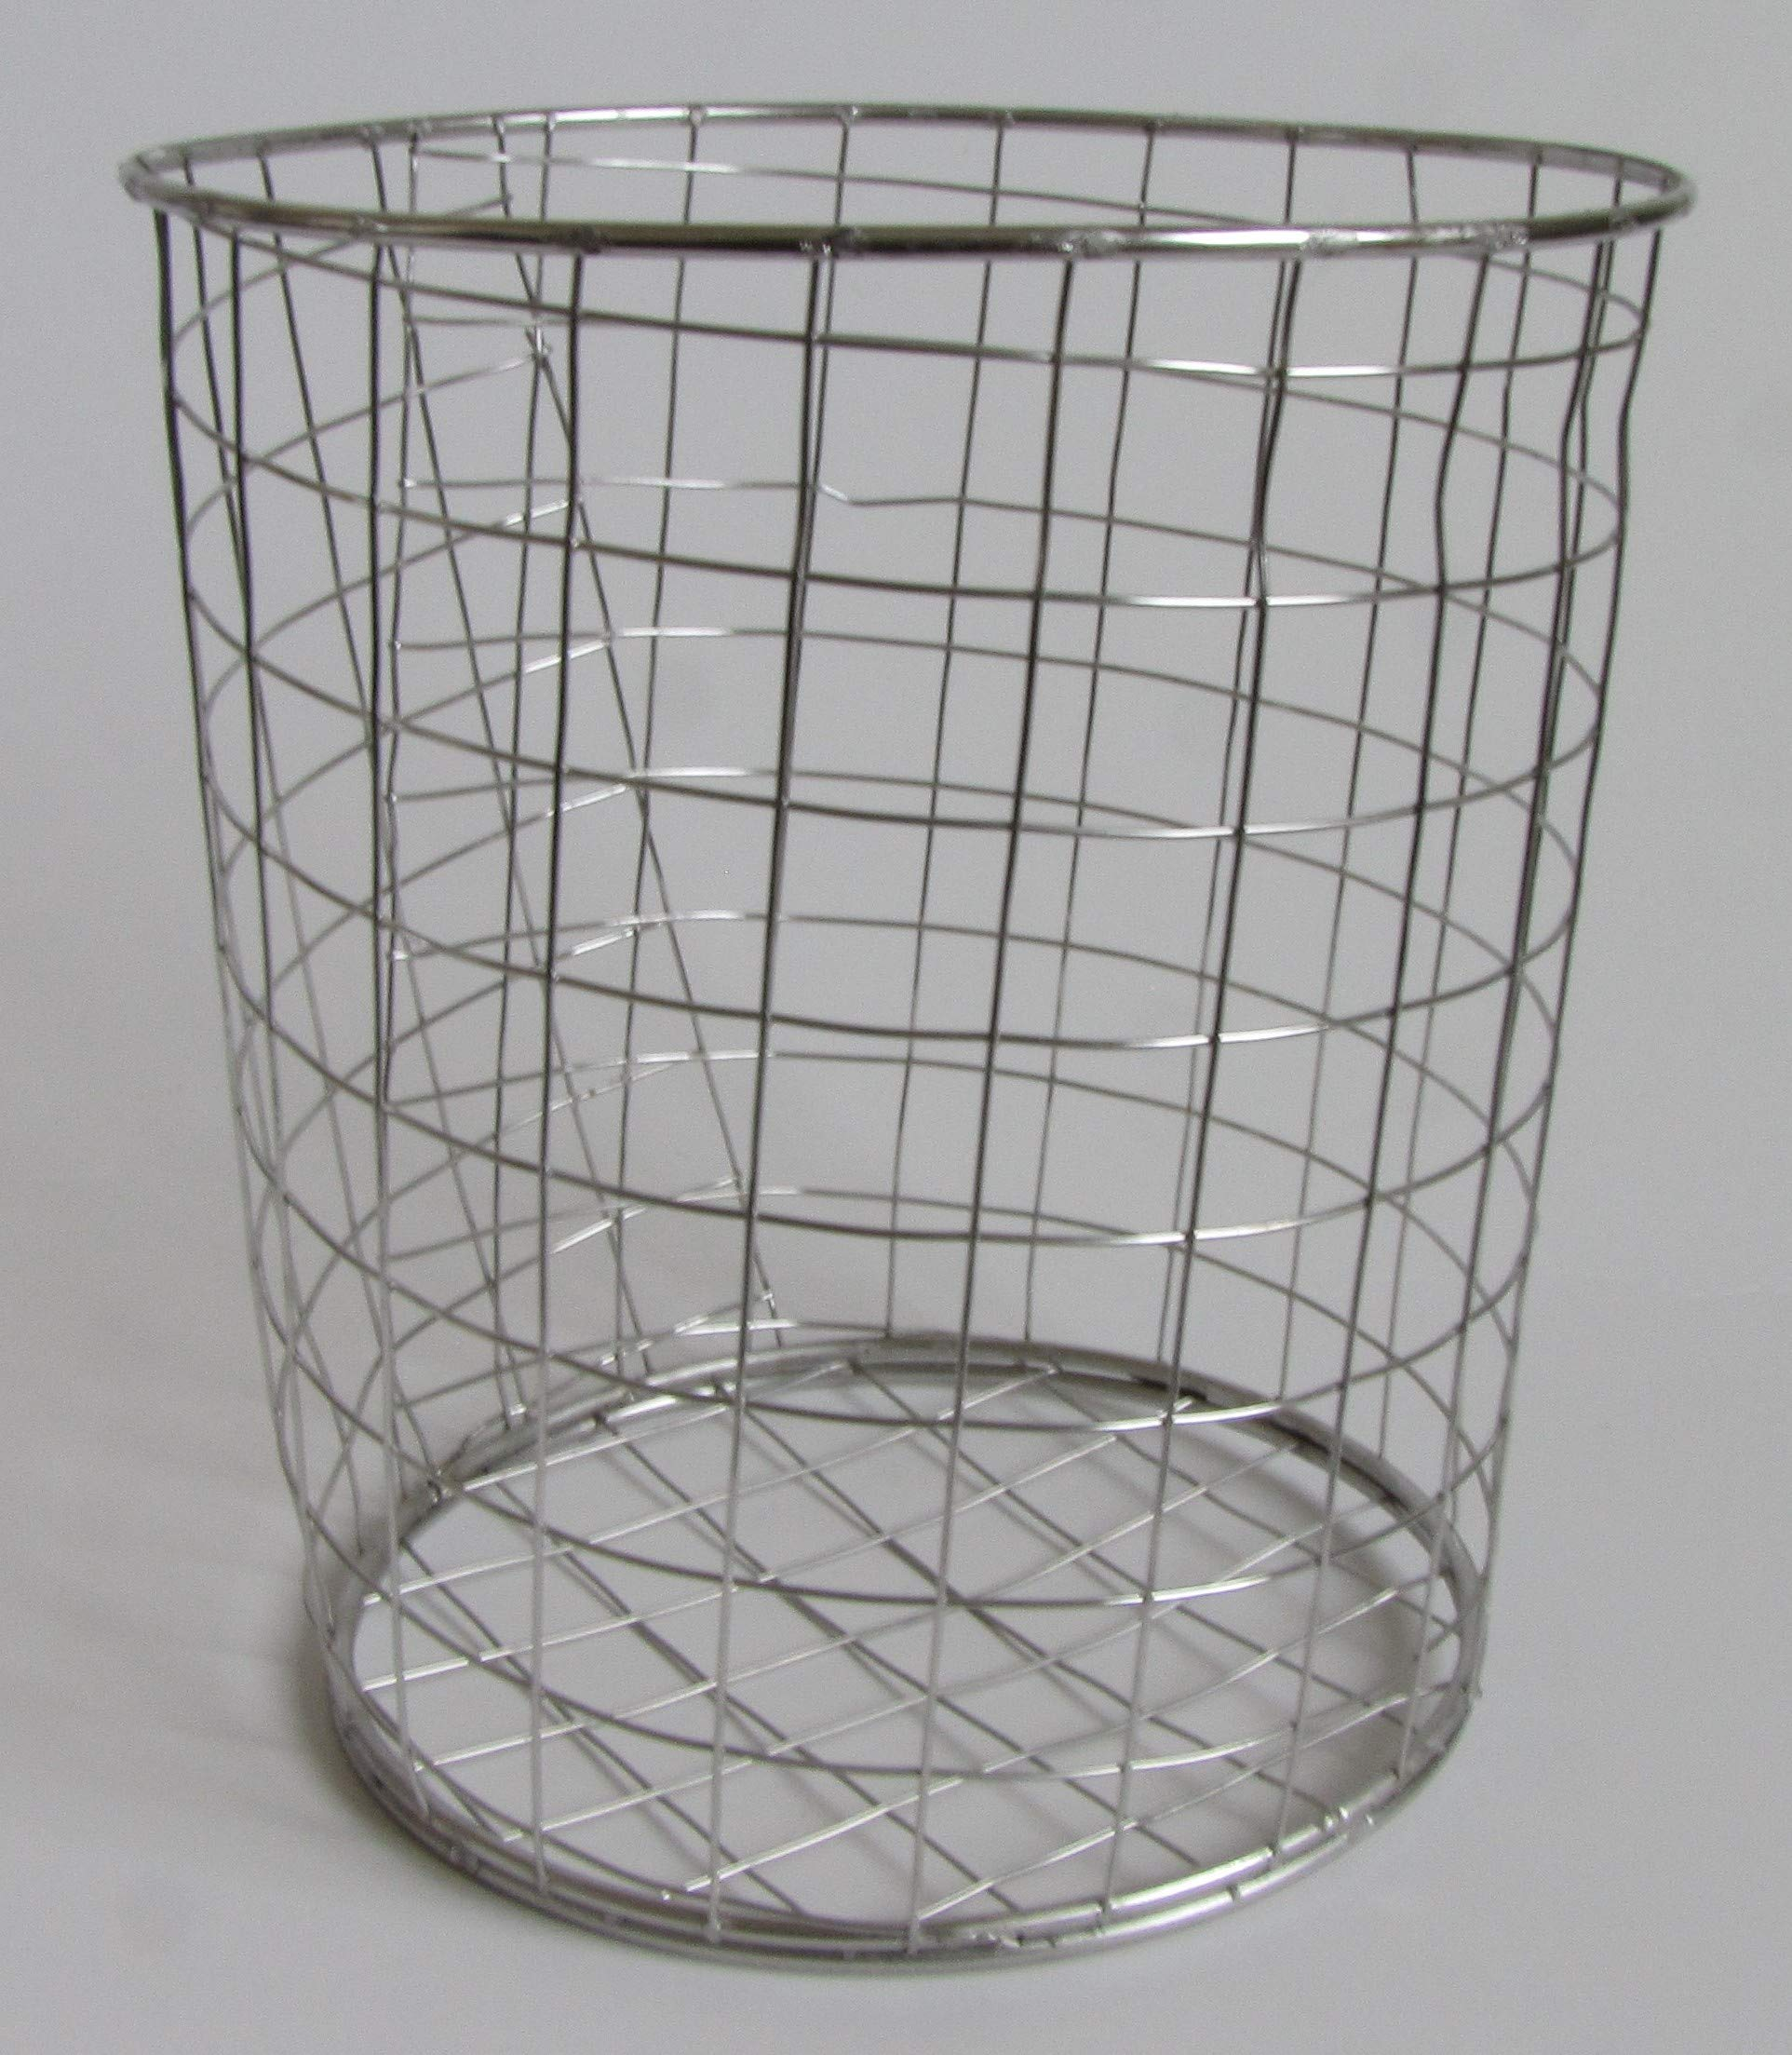 Gophers Limited Stainless Steel Wire Gopher/Mole Barrier Basket, 1 Gallon Size, 1 Case Quantity 12 Baskets by Gophers Limited